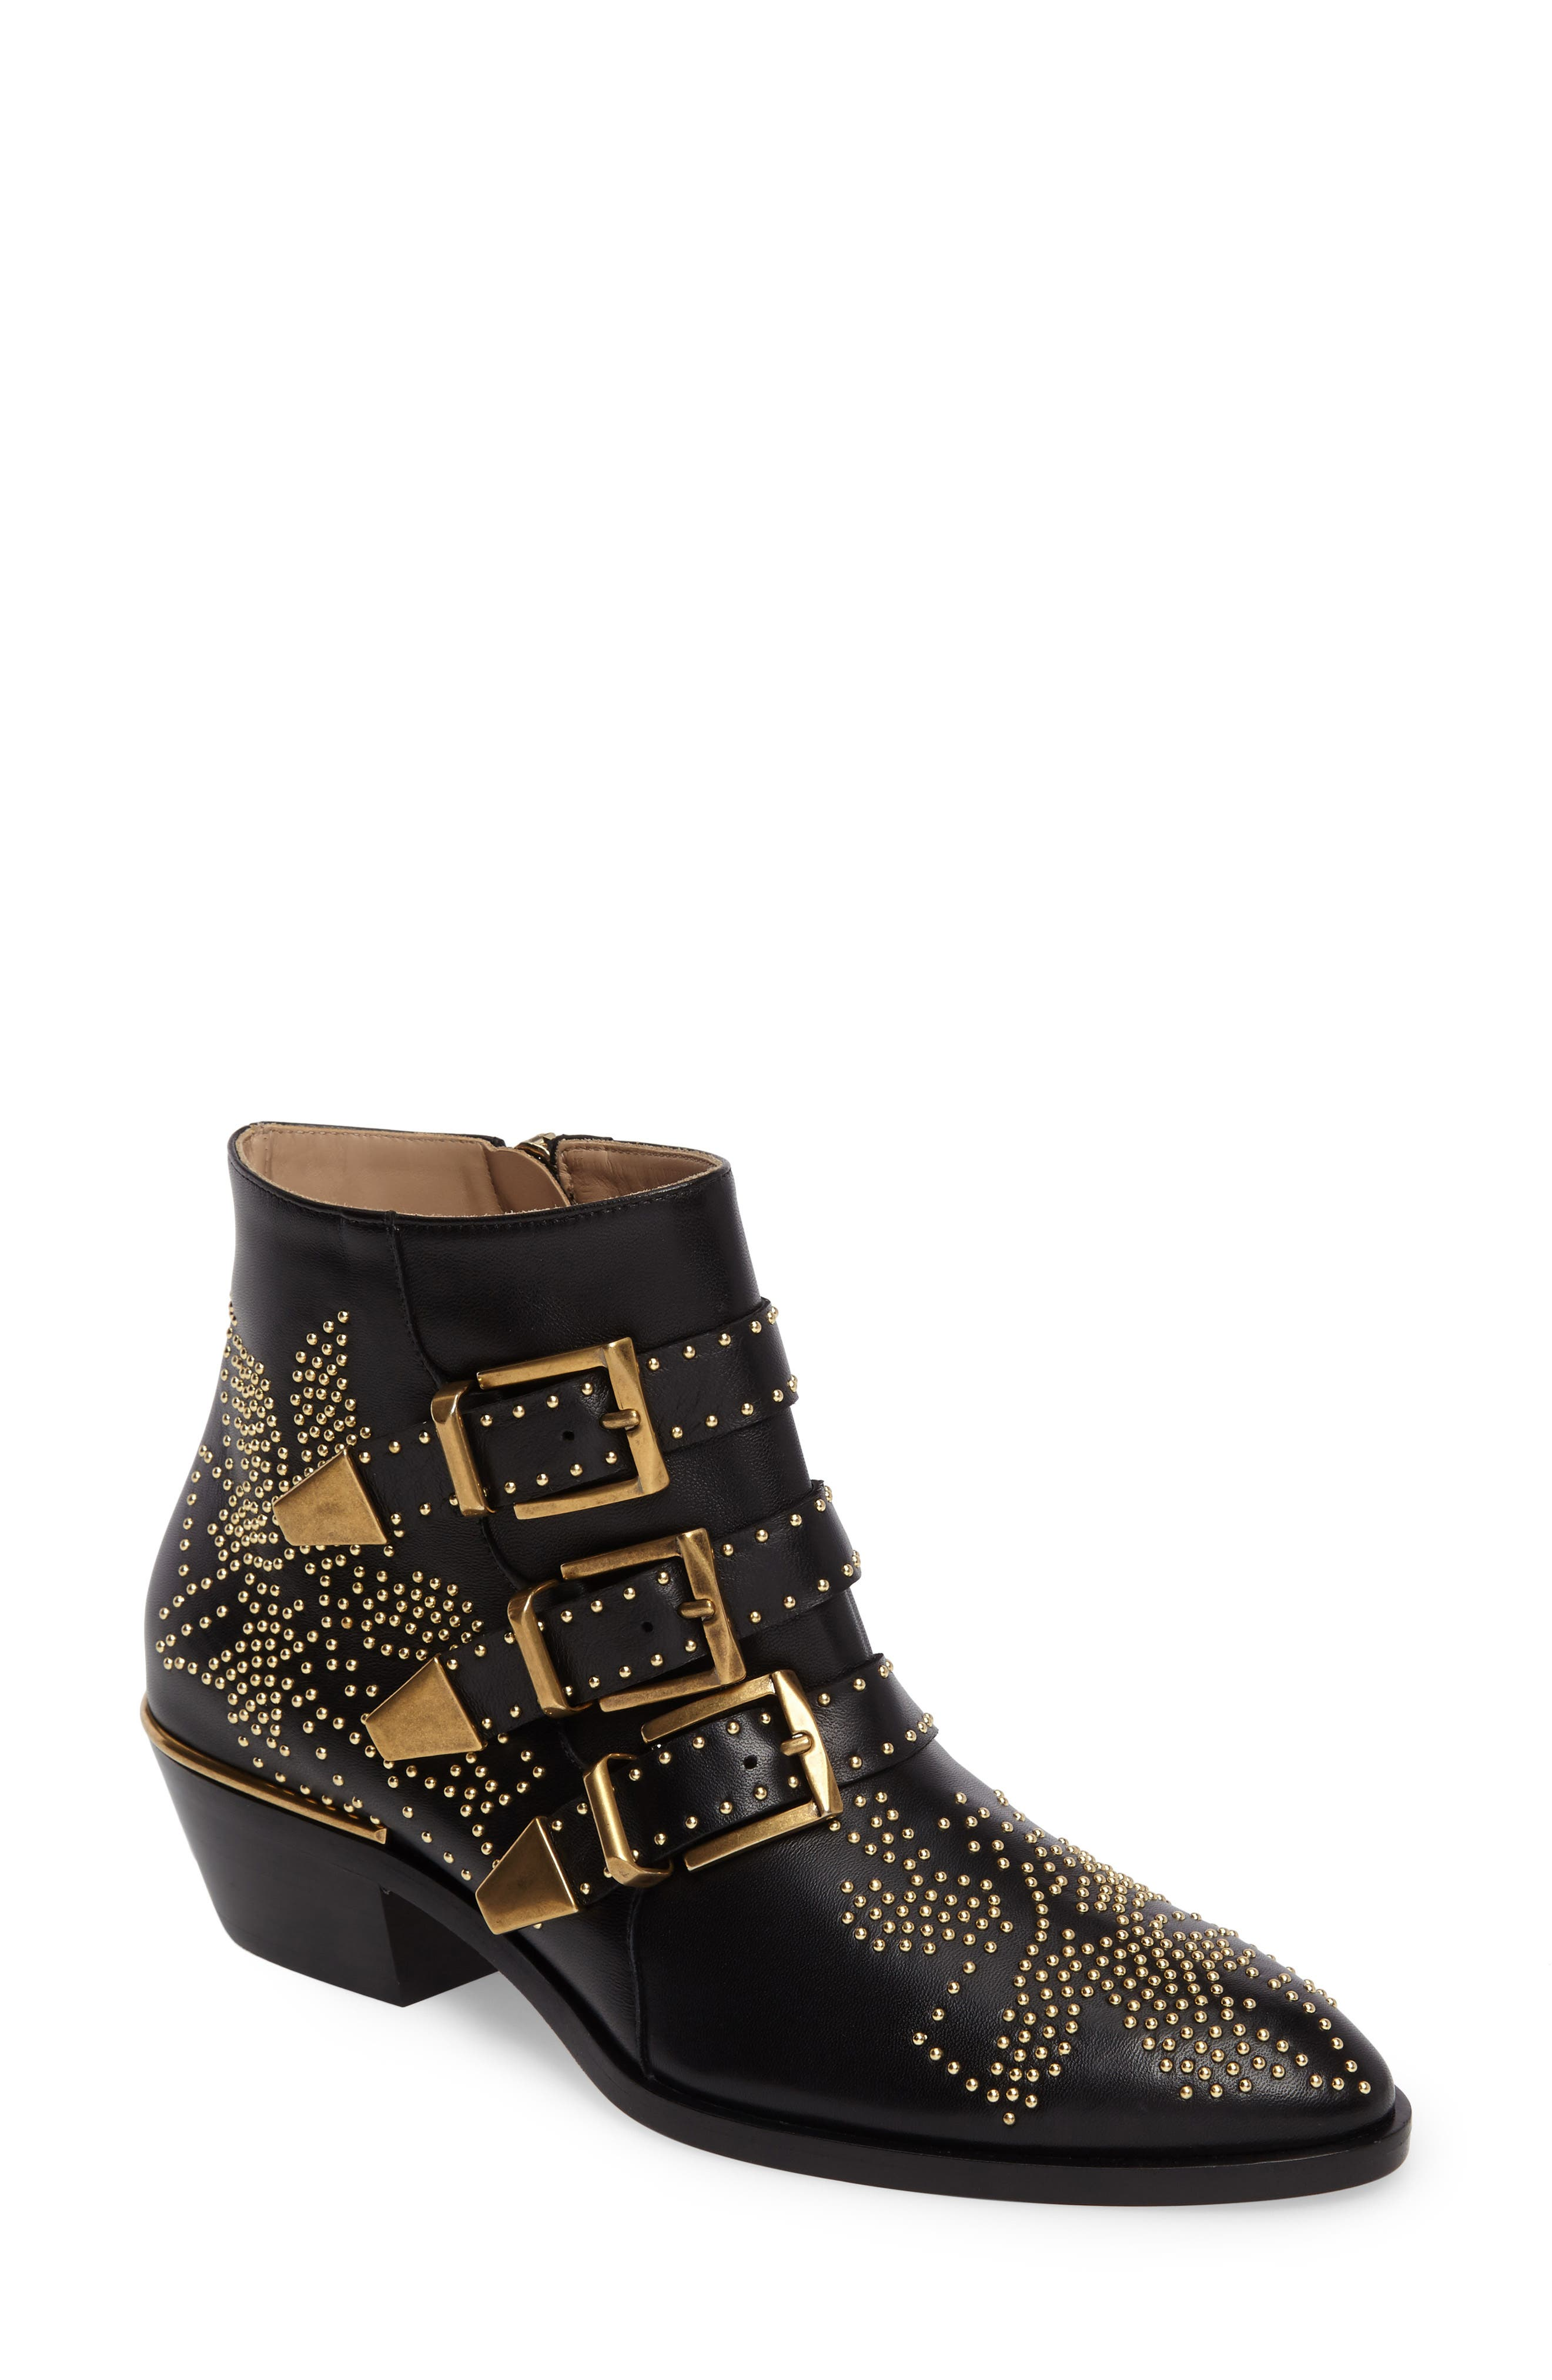 CHLOÉ, Susanna Stud Buckle Bootie, Main thumbnail 1, color, BLACK GOLD LEATHER